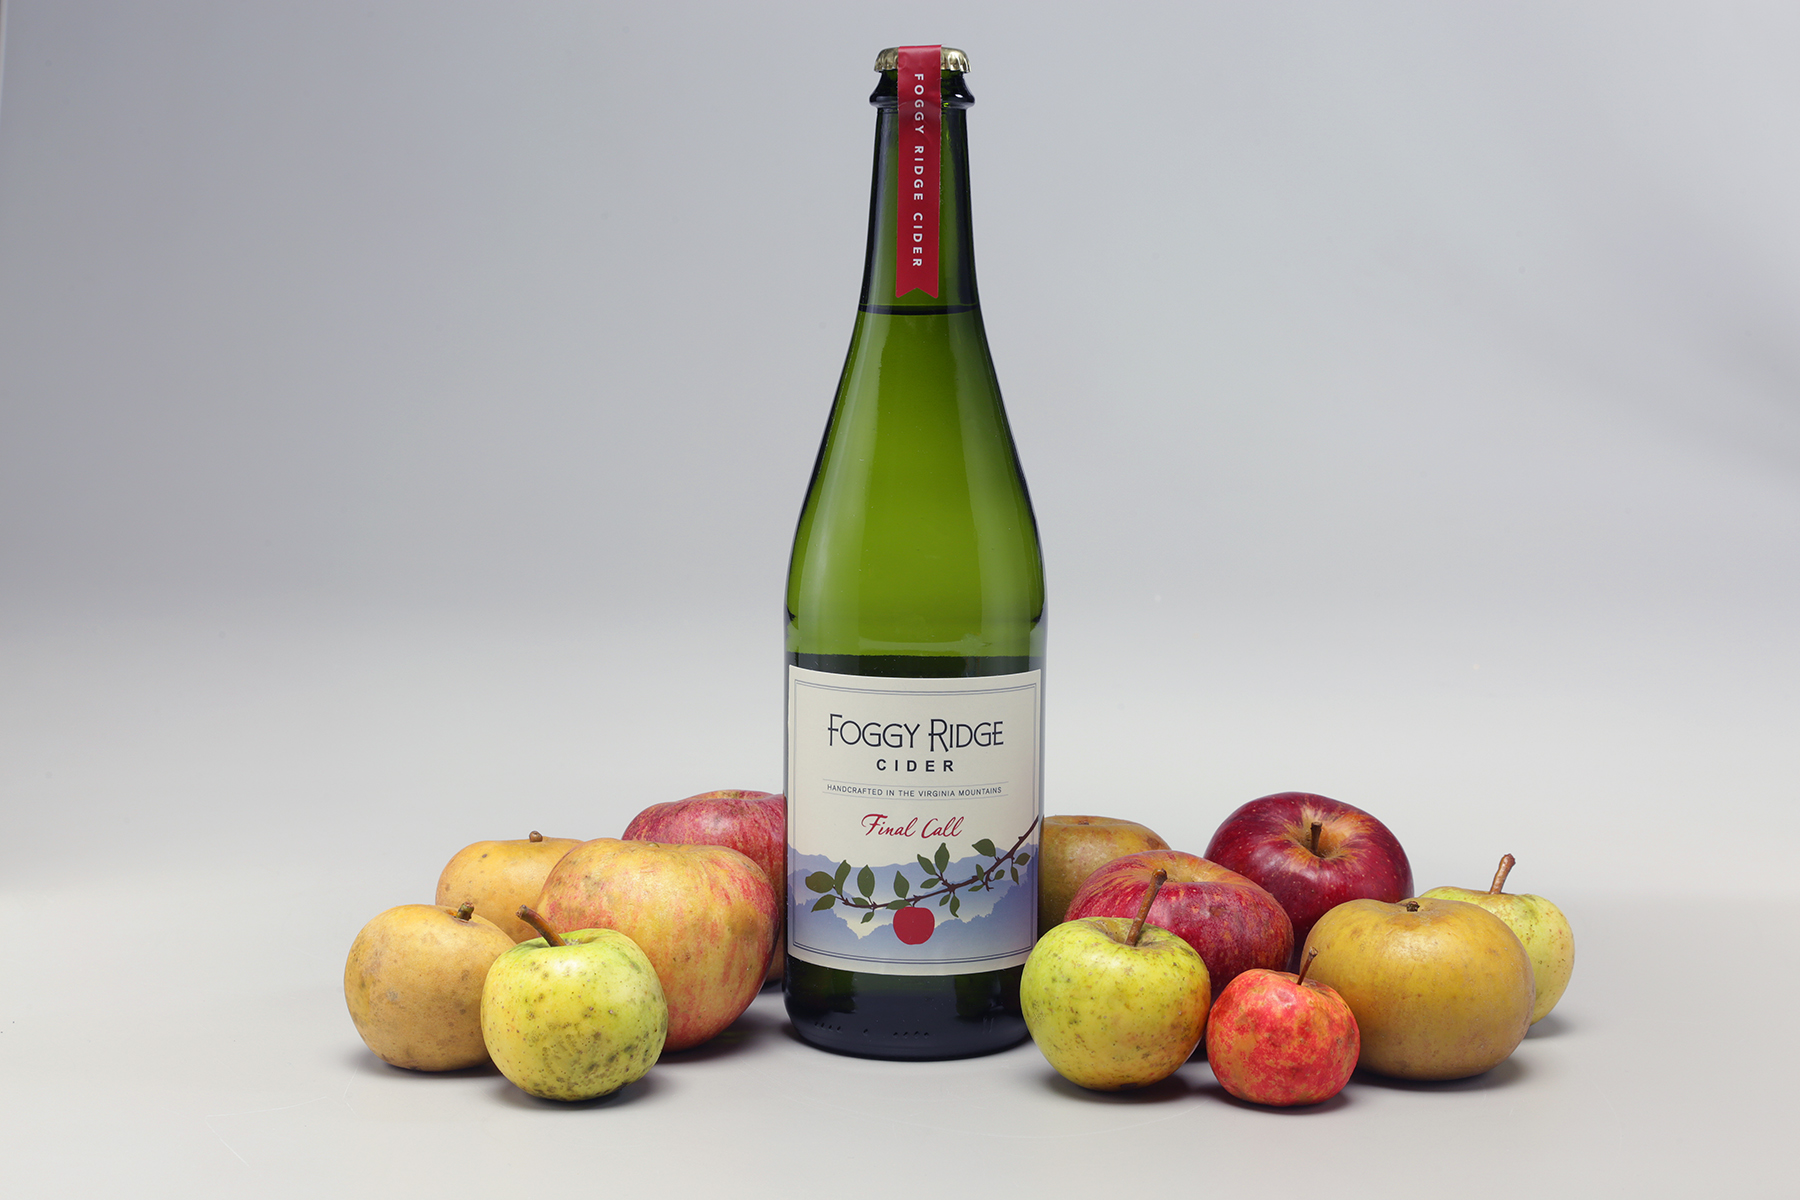 Foggy Ridge Cider Thanksgiving Recipe and Pairing